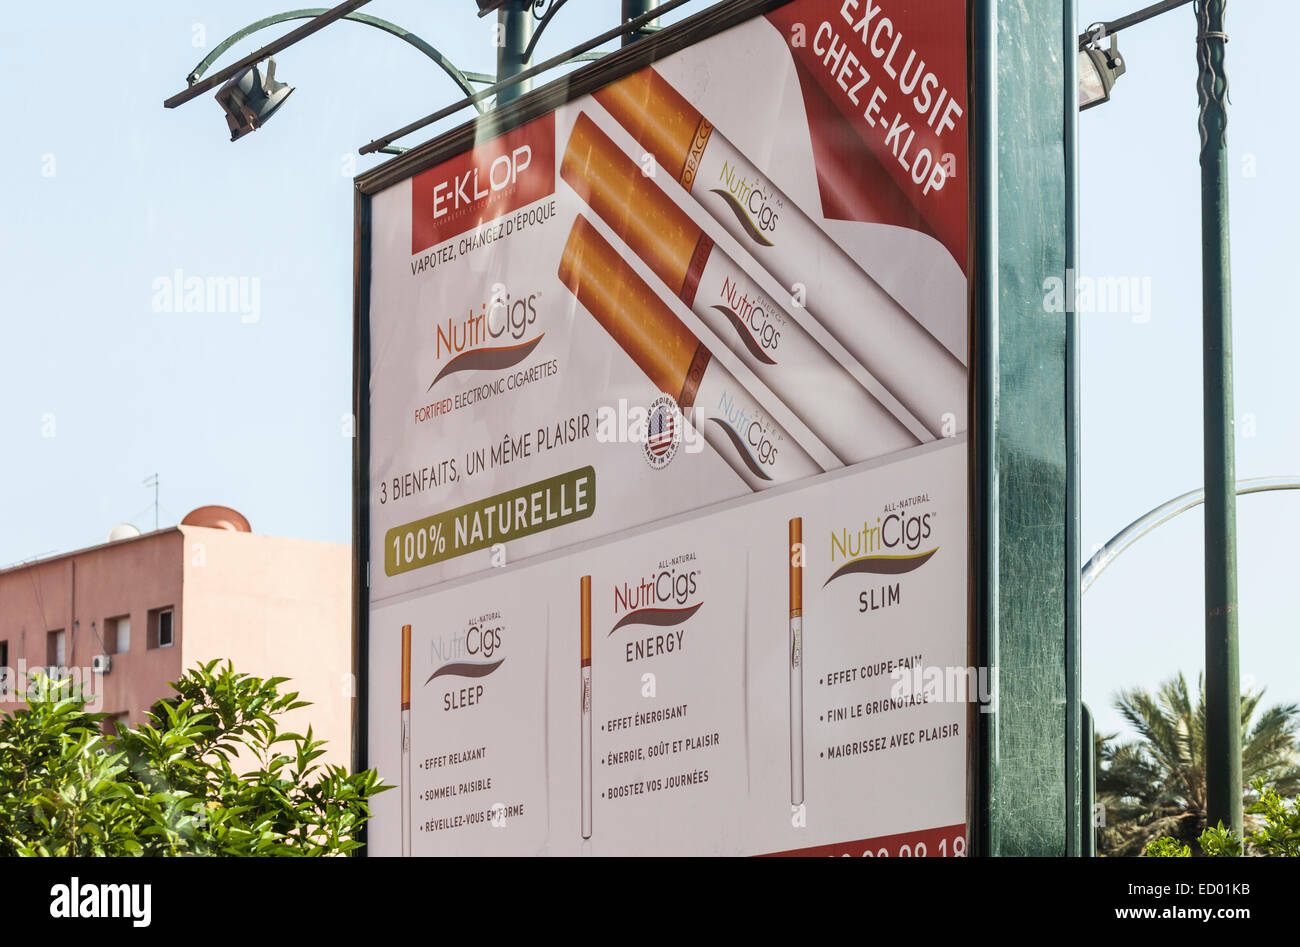 Advertisement hoarding for NutriCigs, an e-cigarette by International Vapour Group marketed by e-Klop in Morocco. - Stock Image